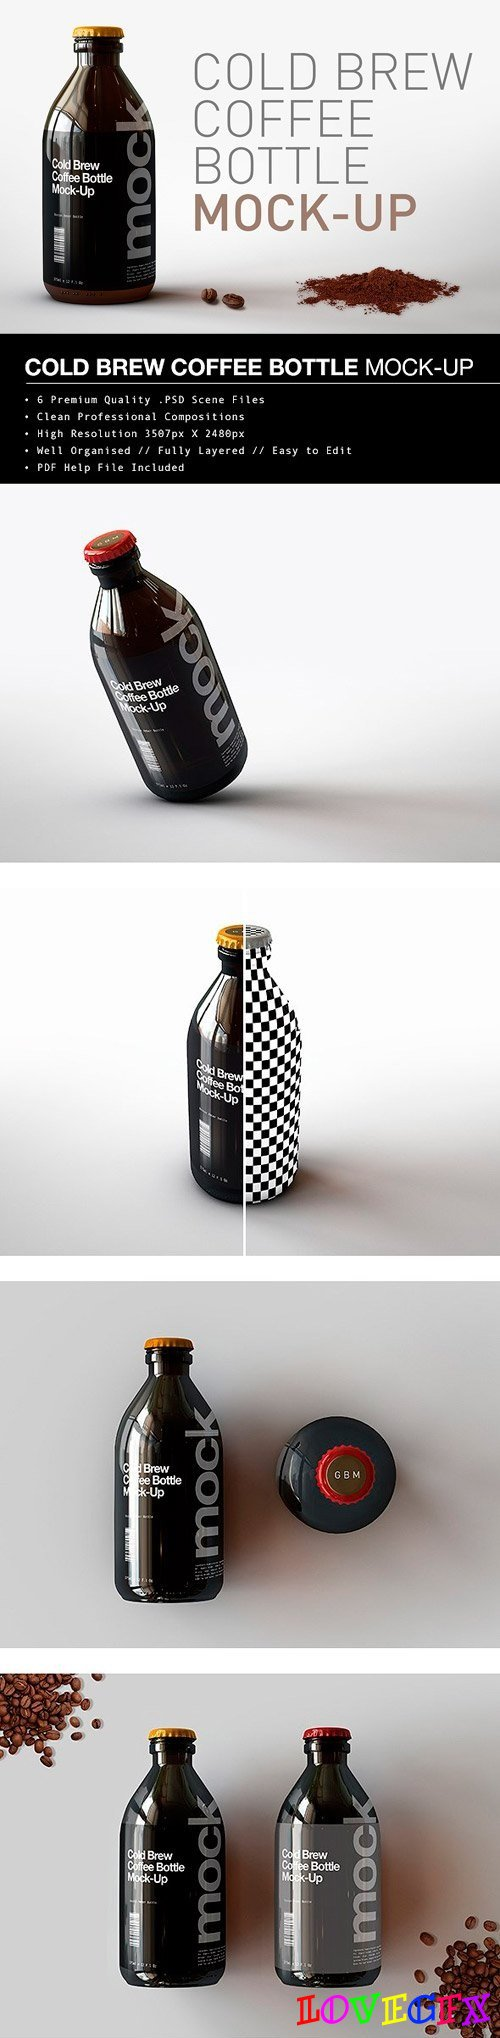 Cold Brew Coffee Bottle Mock-Up 1695956